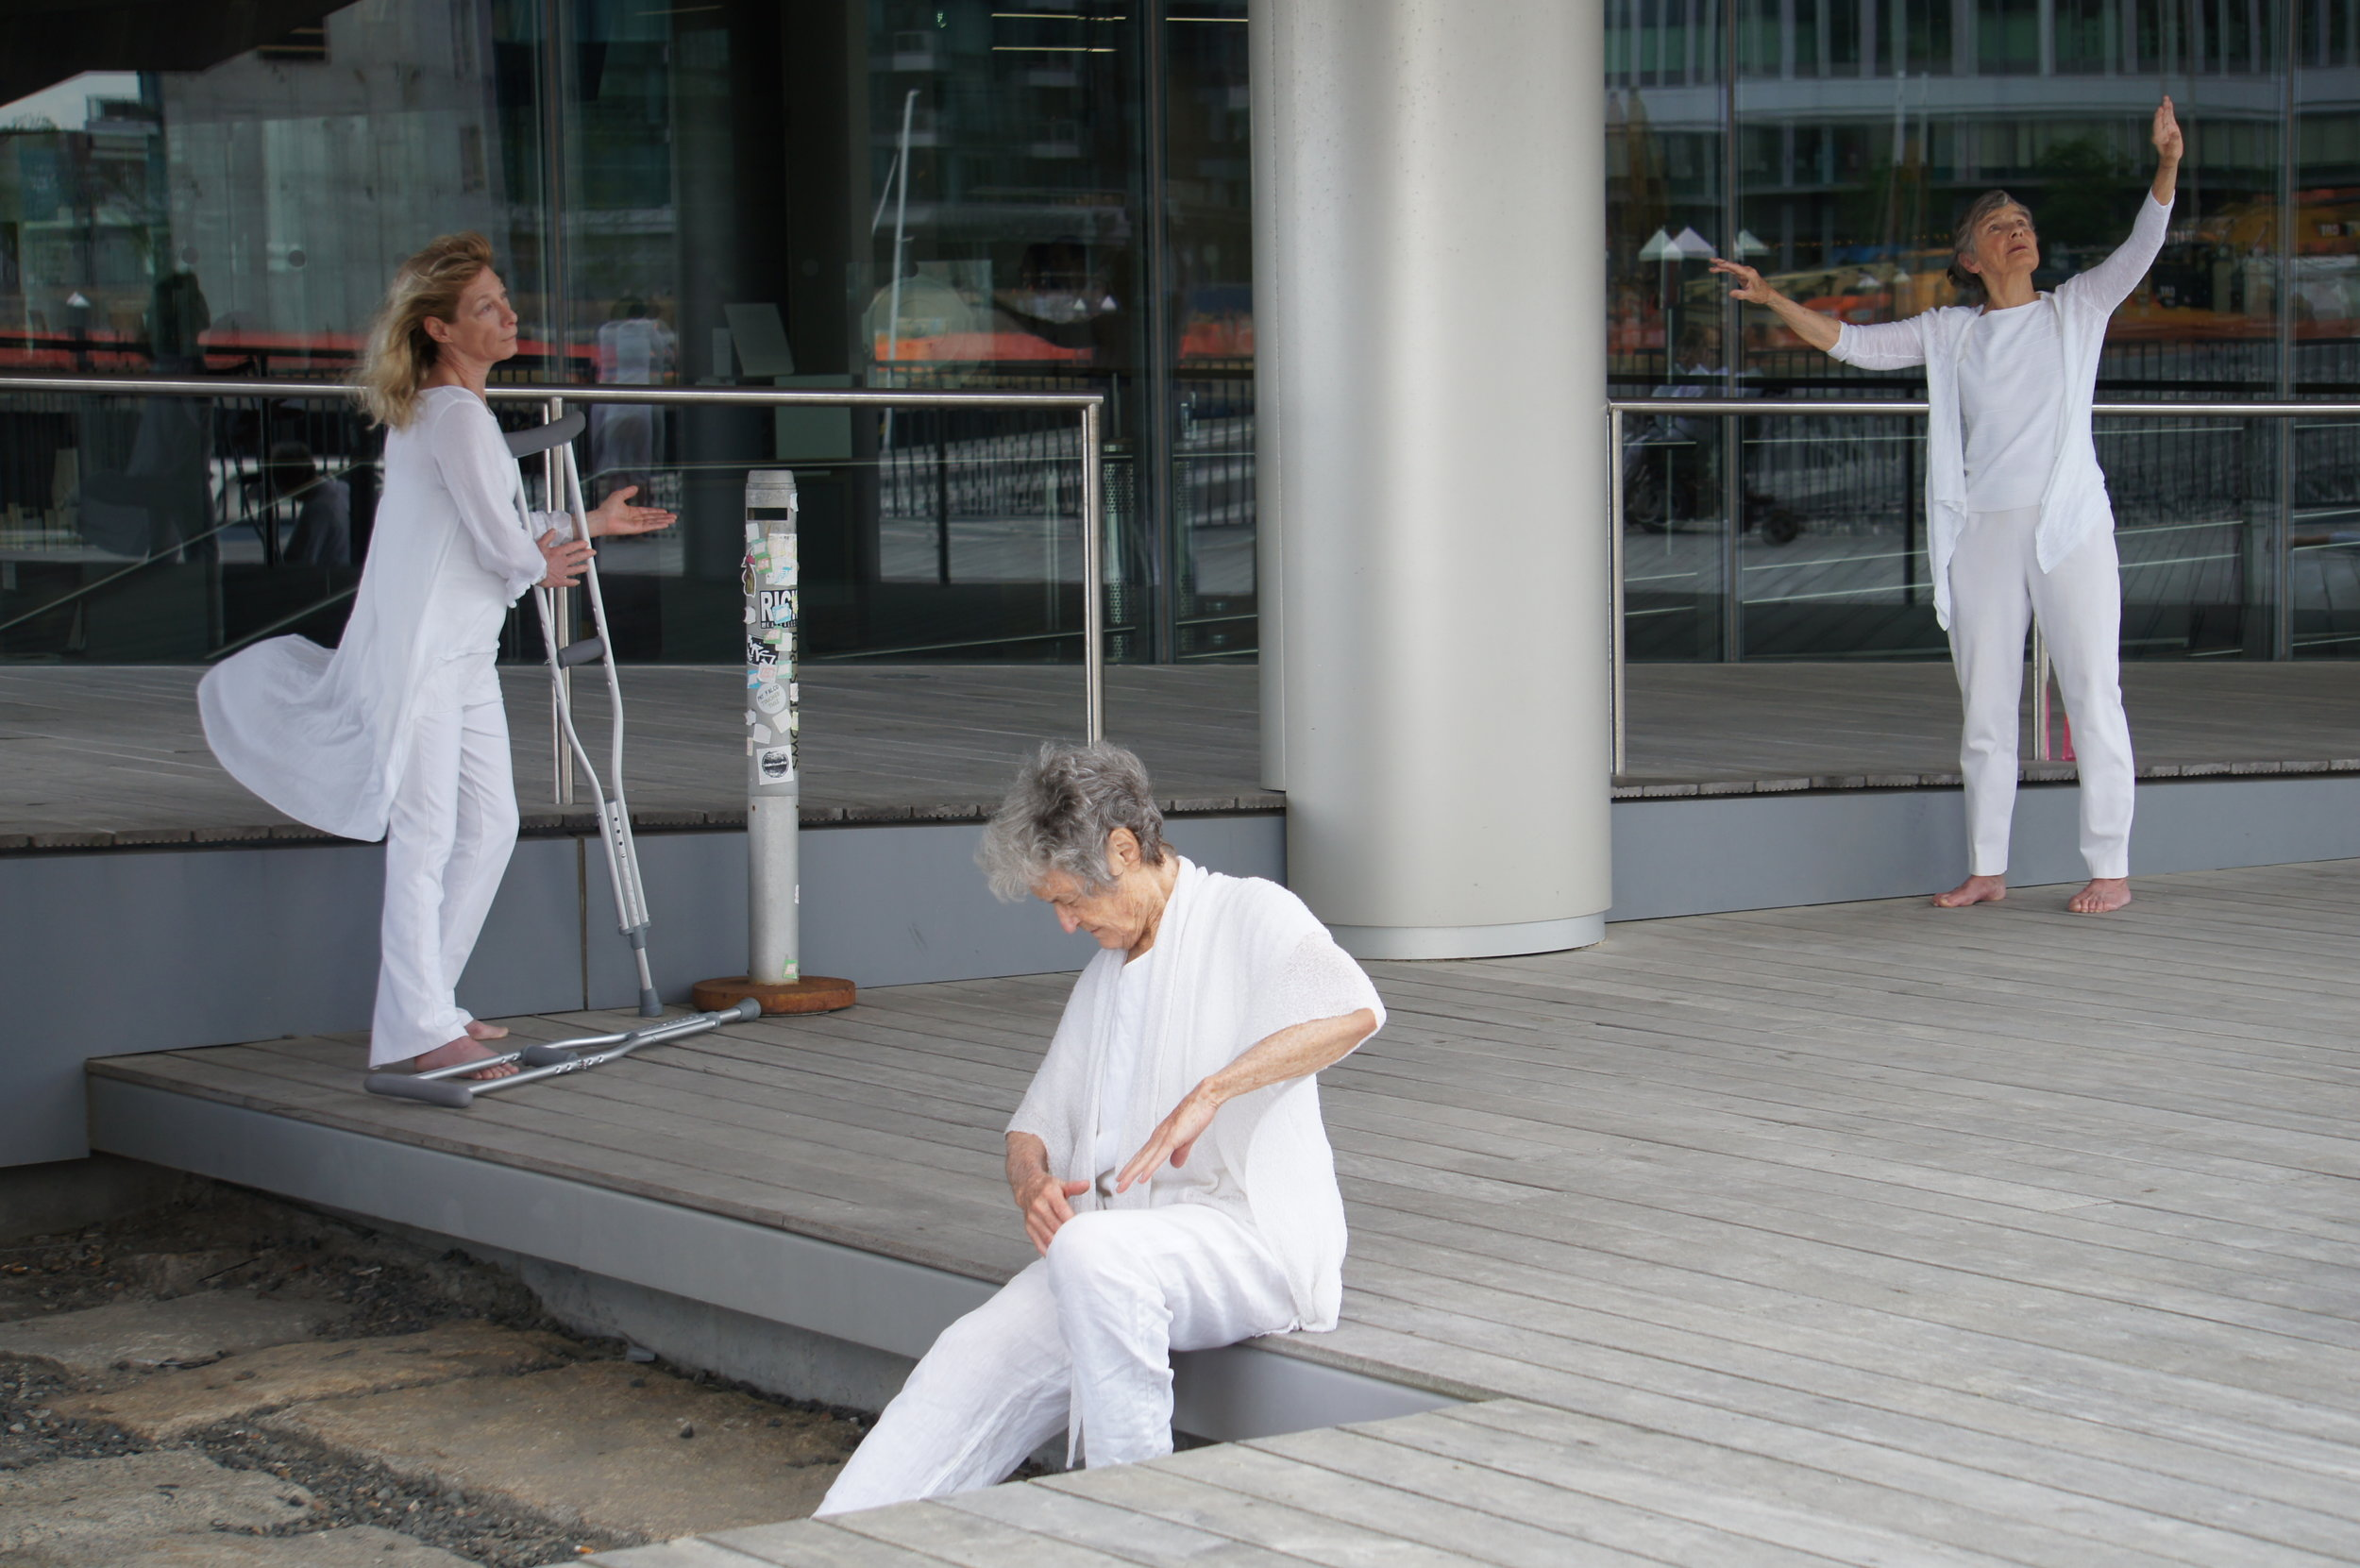 color photo of three older women underneath an incline, dressed in white, one holding herself and sitting, one with outstretched arms, the other looking out